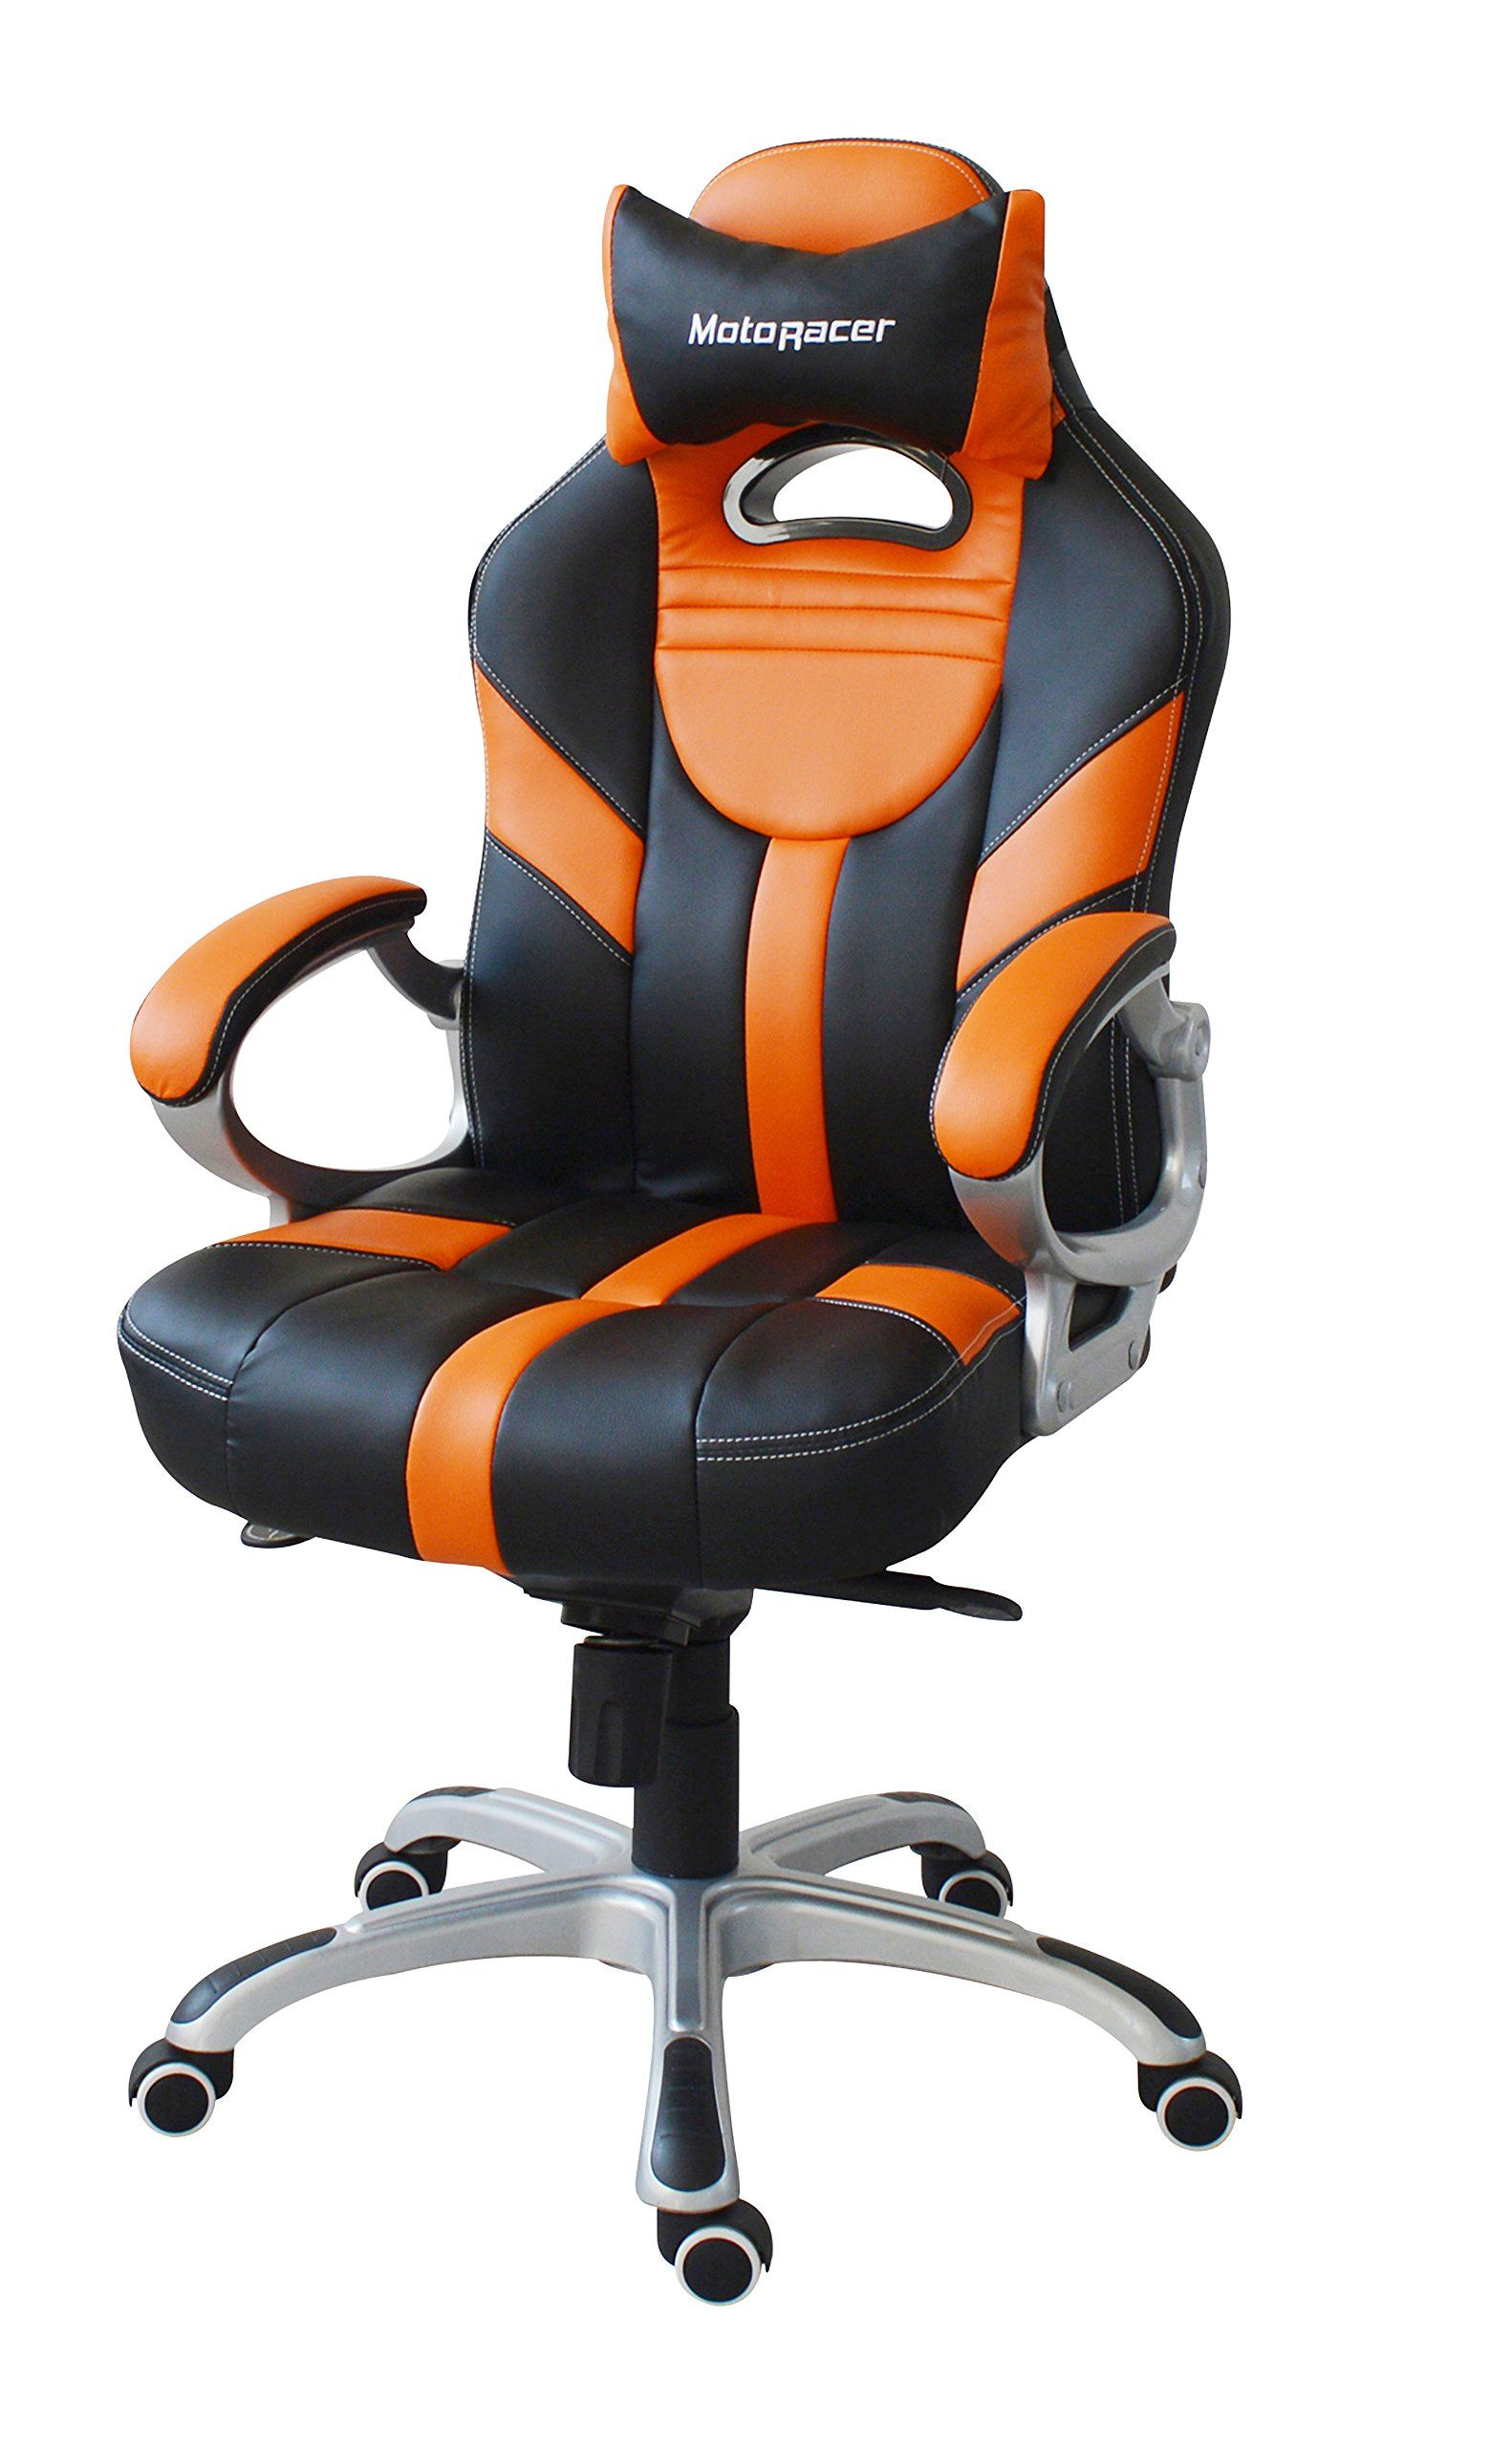 MotoRacer Gamer Edition Gaming Chair